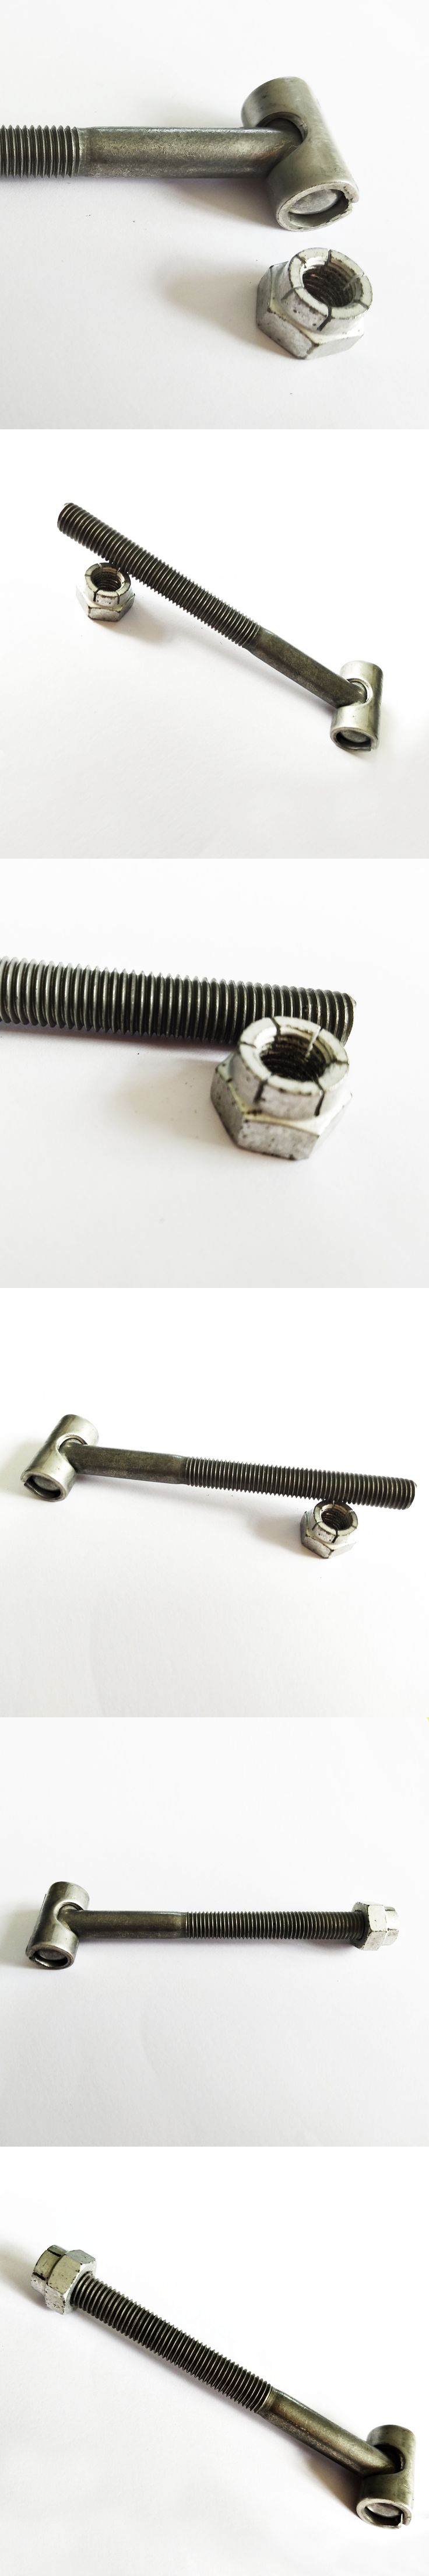 ZUCZUG Stainless steel 304 Quick V band clamp with male and female  flange assembly